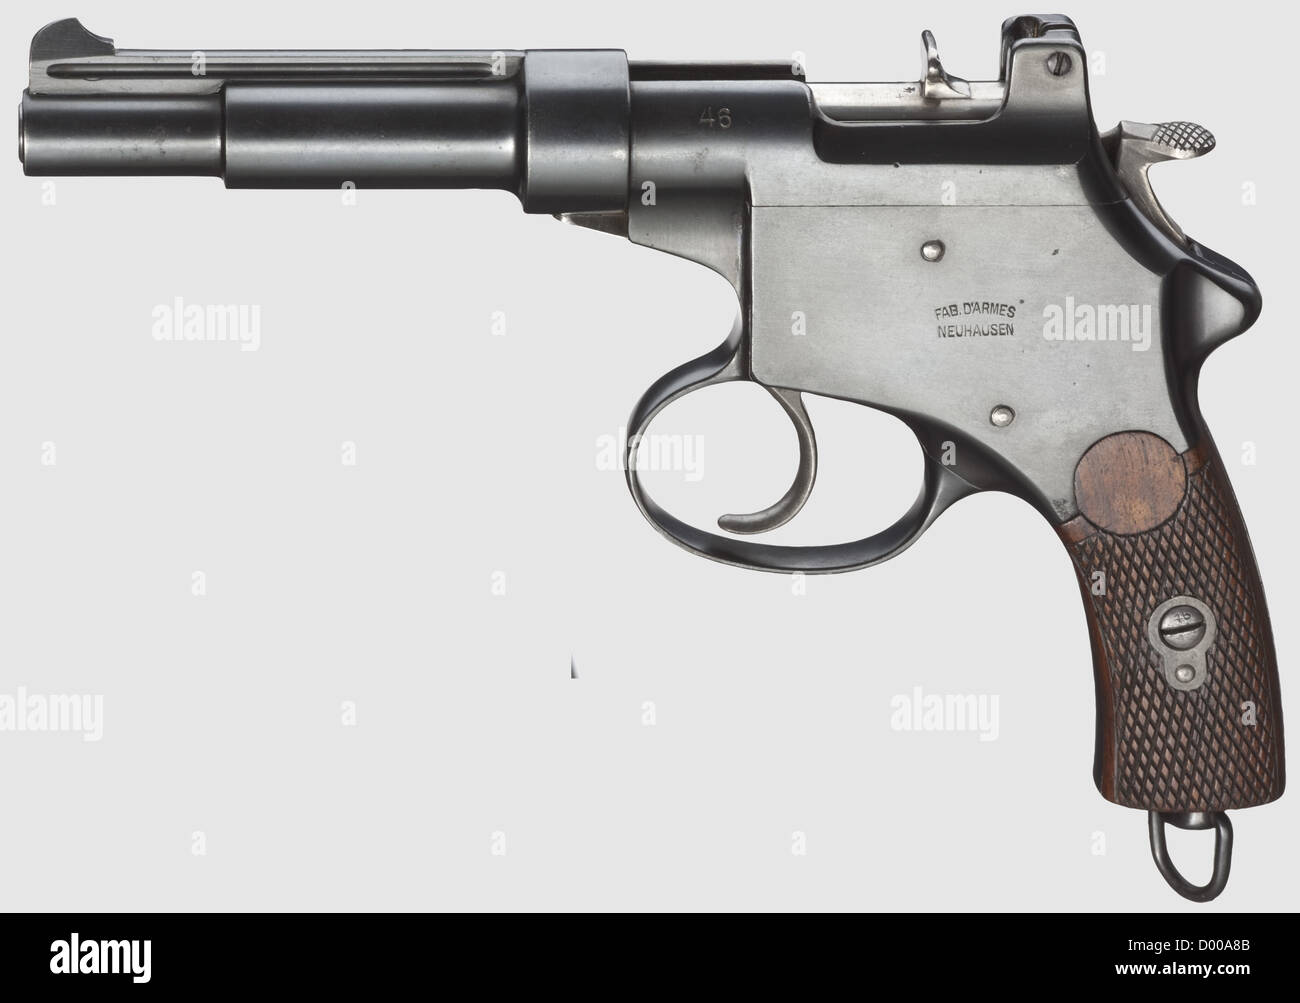 Mannlicher Mod. 1894, Swiss type, cal. 6.5 mm Mannlicher, no. 46. Matching numbers. Bright bore, barrel length 170 - Stock Image